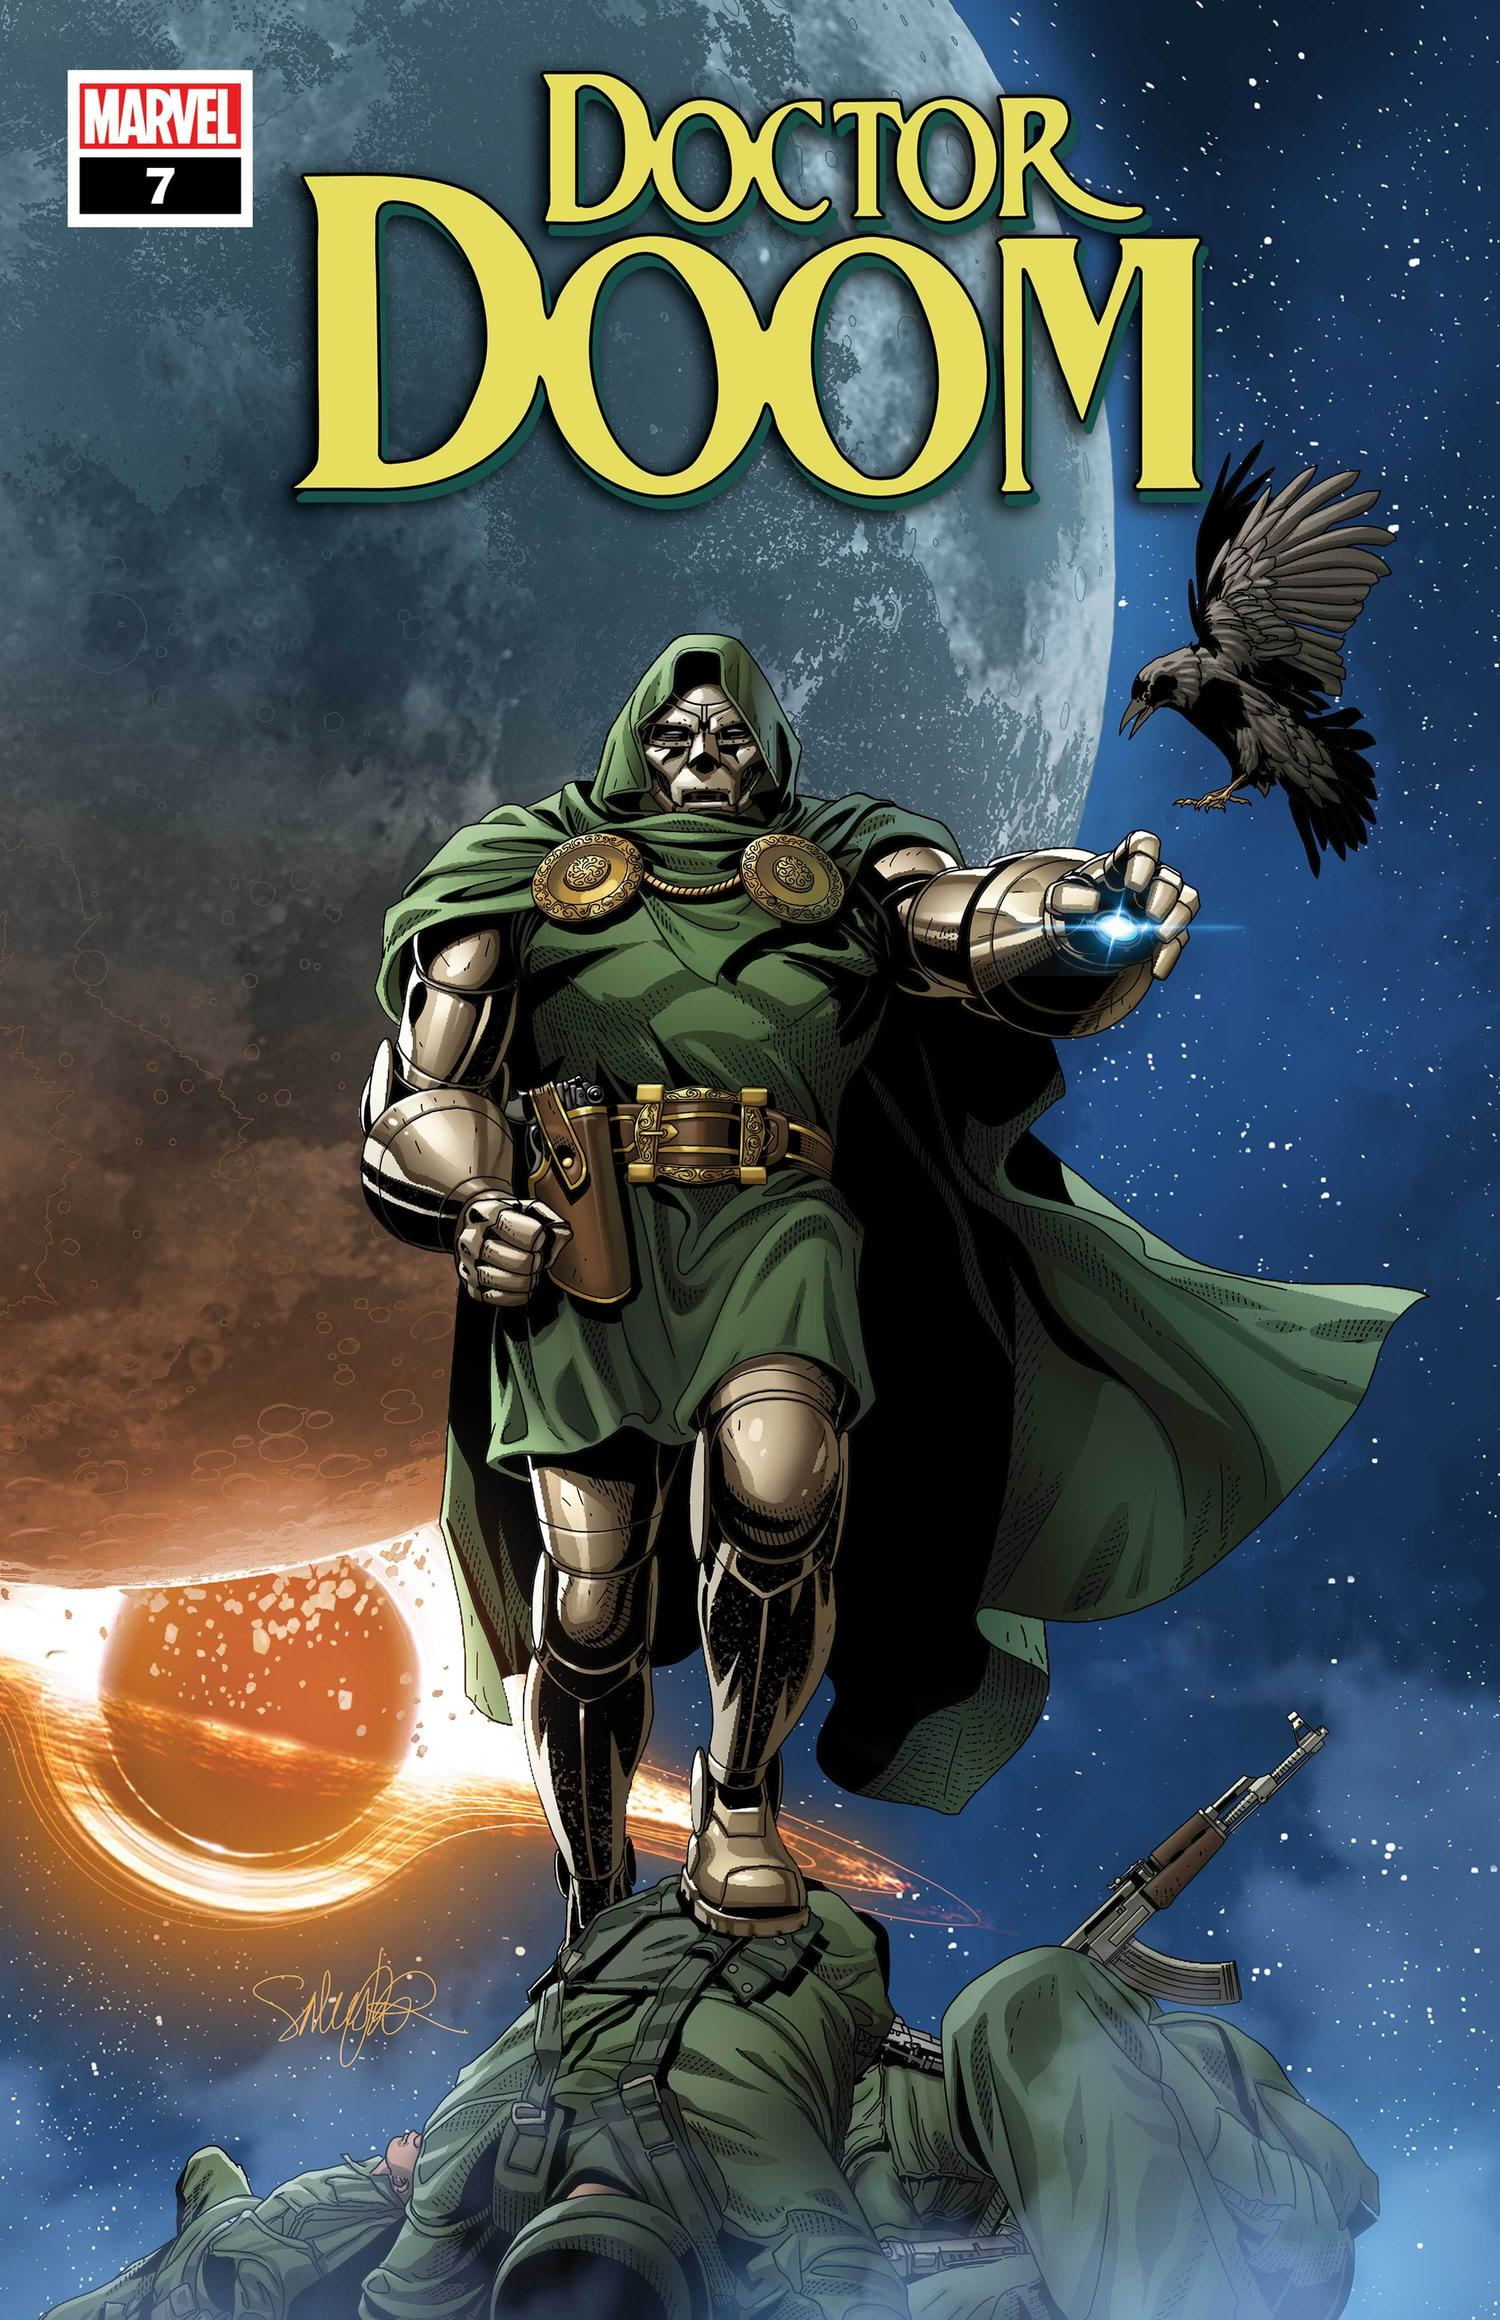 DOCTOR DOOM #7 WRITTEN BY CHRISTOPHER CANTWELL, ART AND COVER BY SALVADOR LARROCA